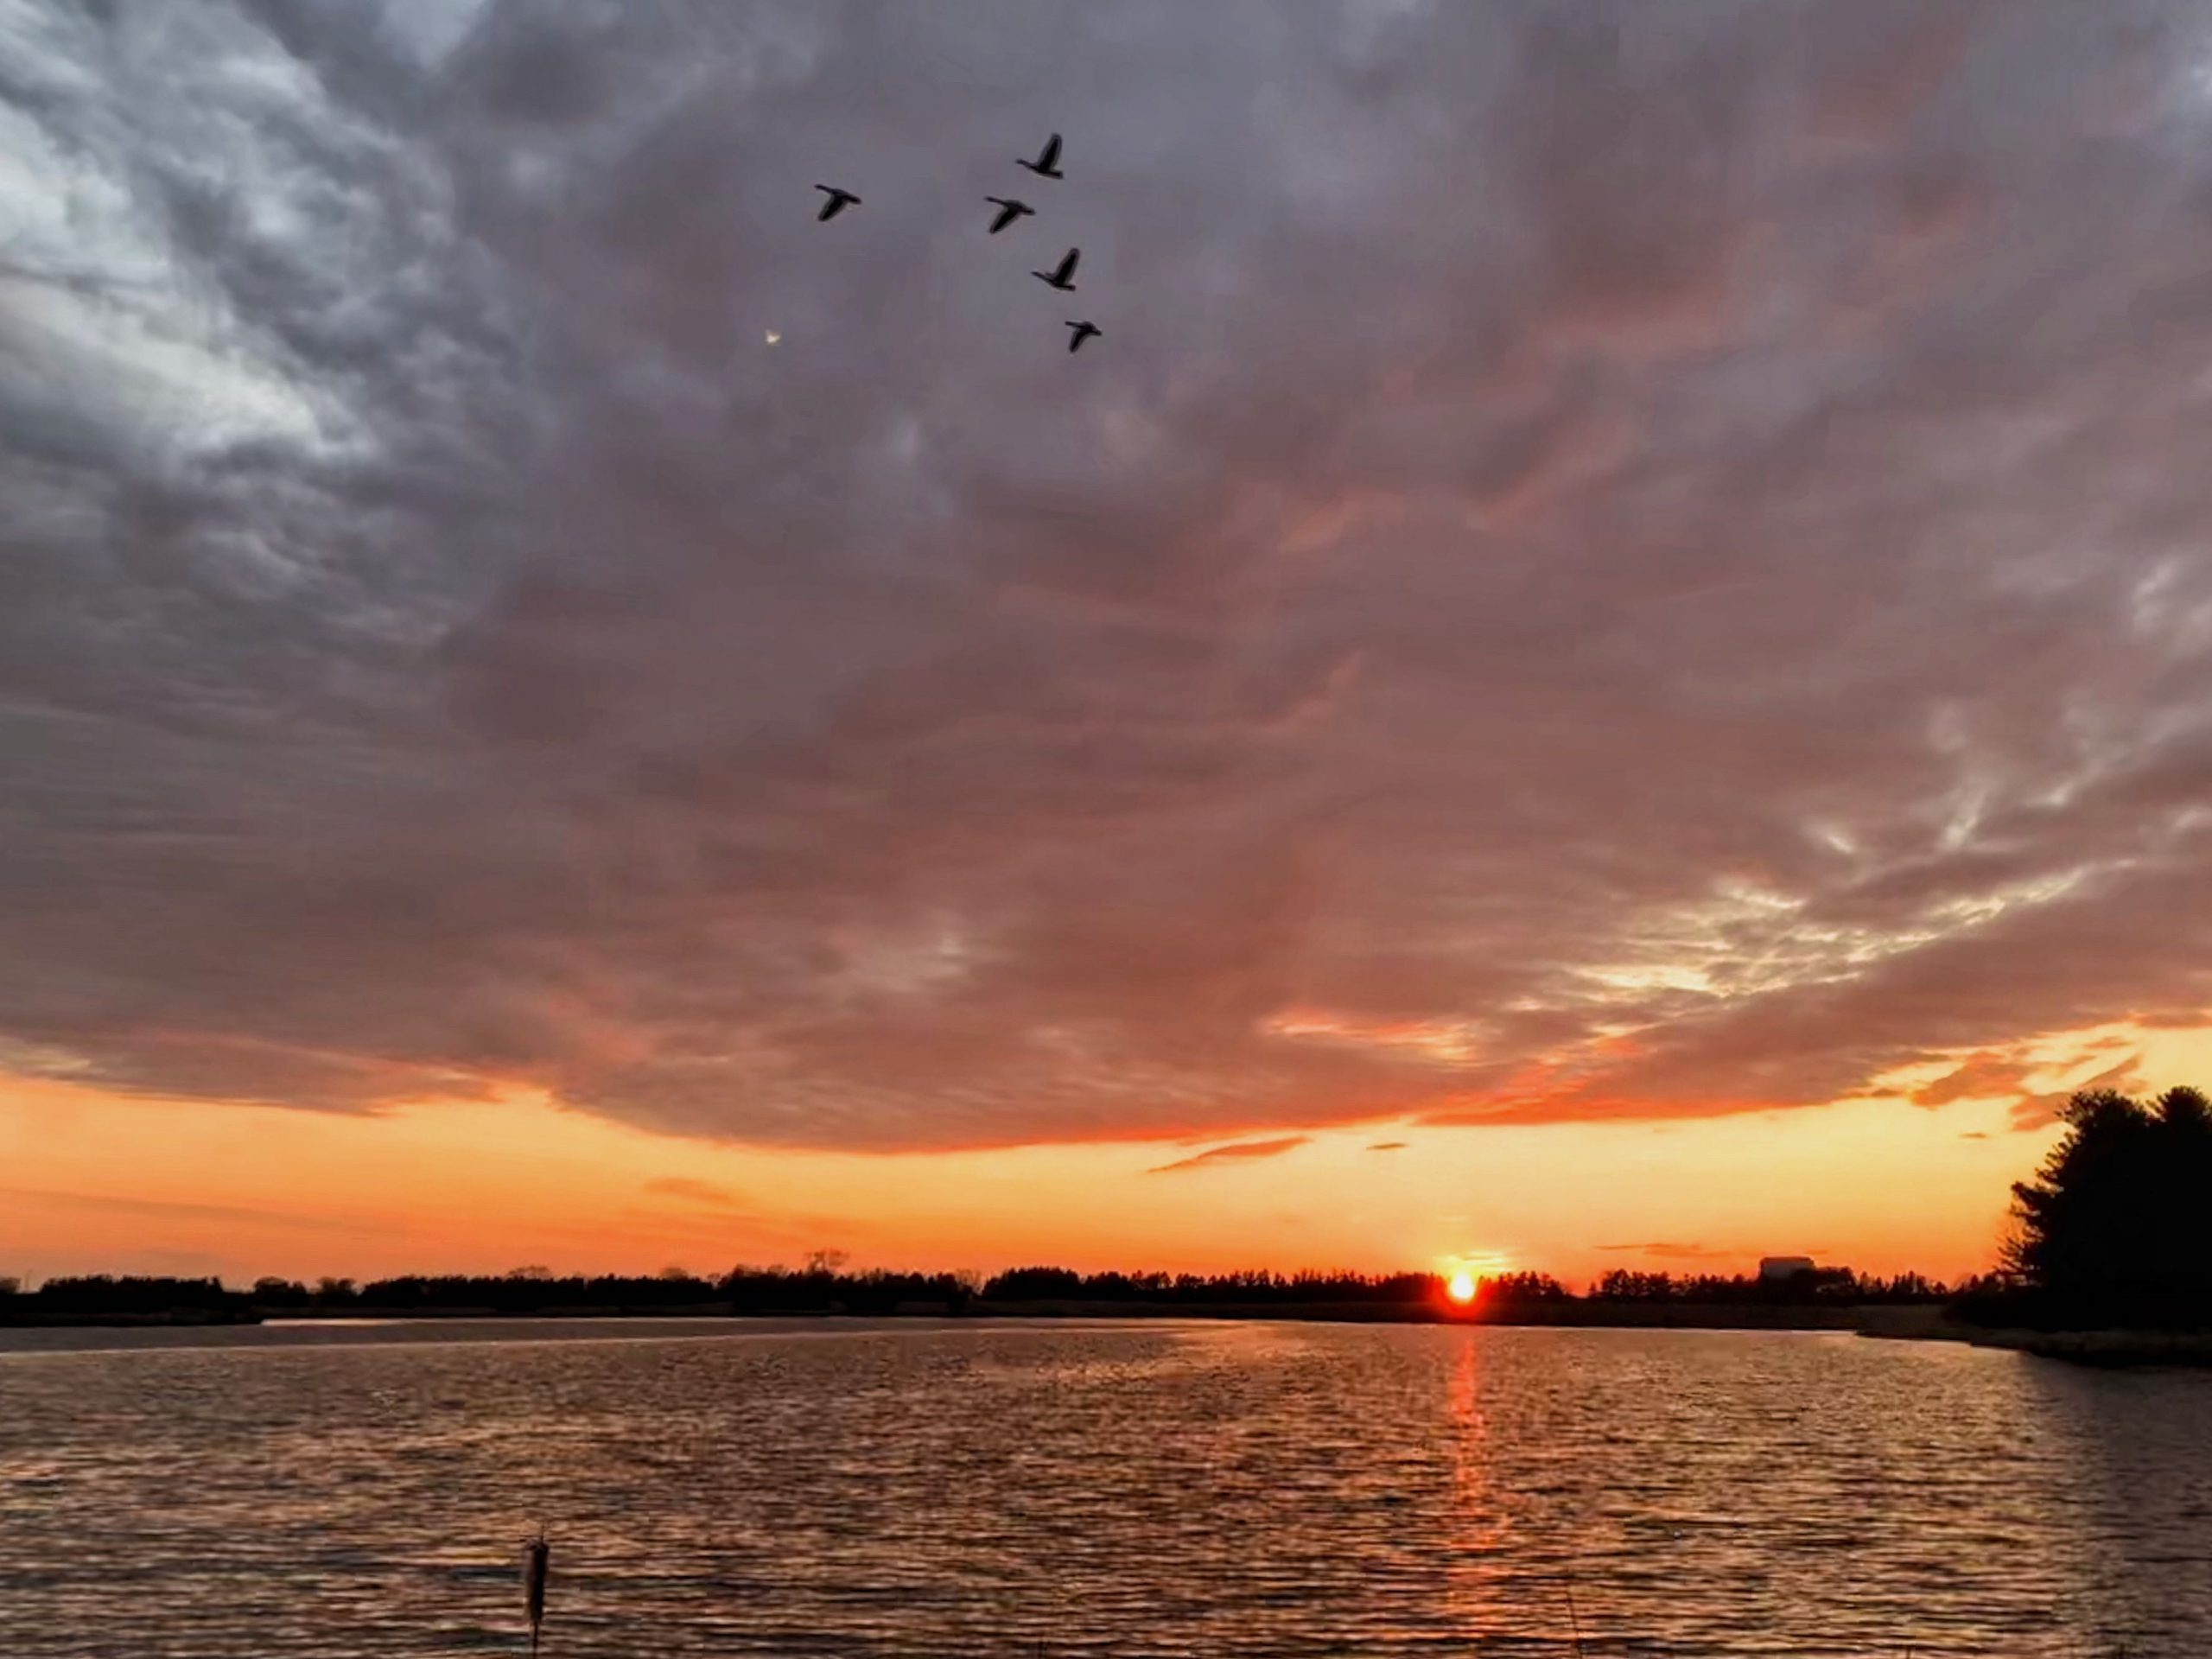 Geese cross the sky full of evening clouds, the color of molten gold, as the sun sets over Lake Law. nature, landscape, sunset, sky, cloud, sun, water, lake, Lake Law, wildlife, bird, goose, animal Photo: Sudeshna Ganguly